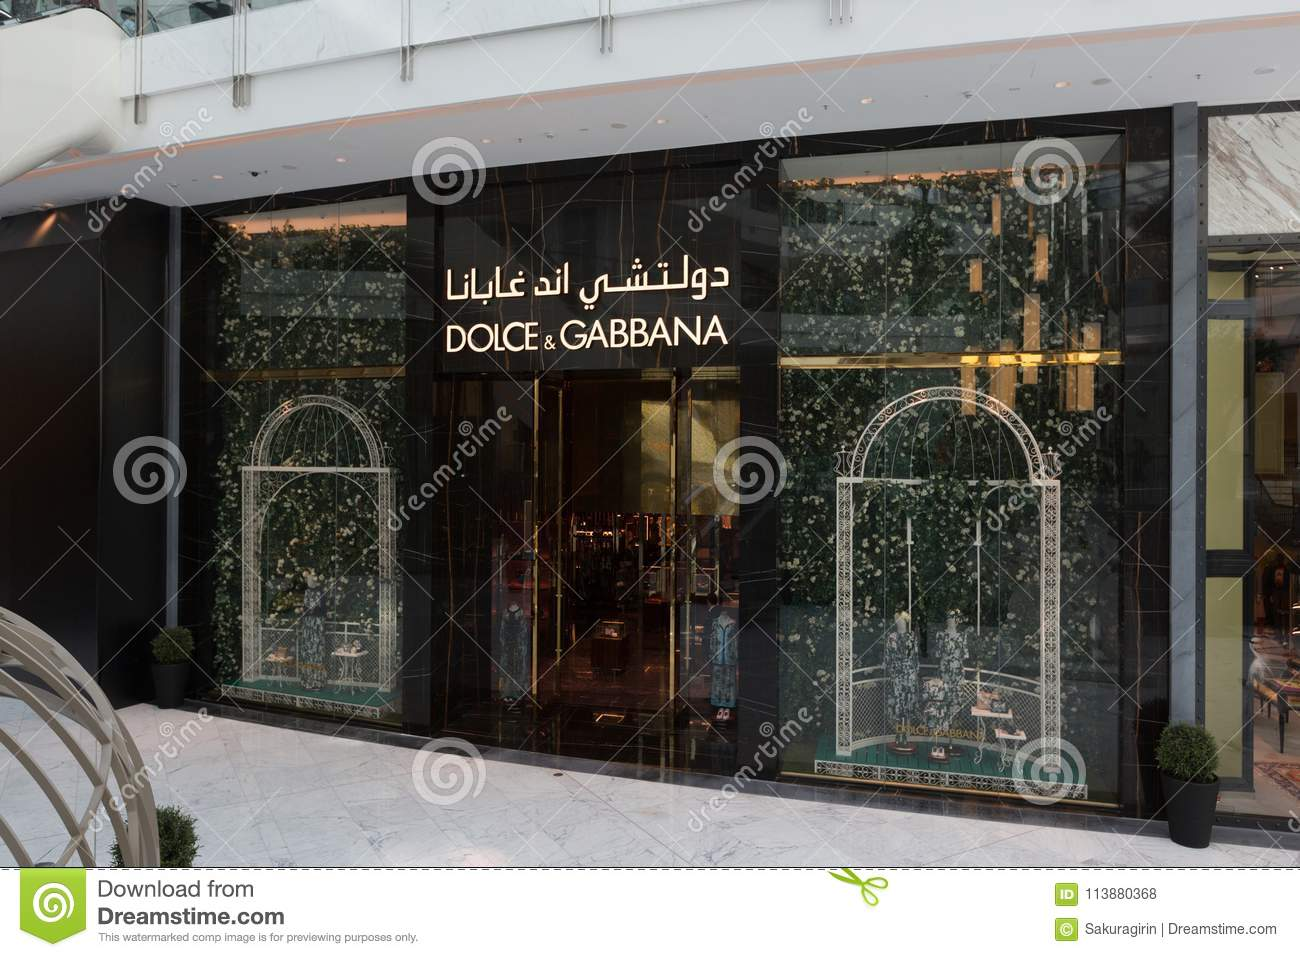 fad61a88c0d7 Dolce & Gabbana Flagship Store In Dubai Mall, United Arab Emirates ...